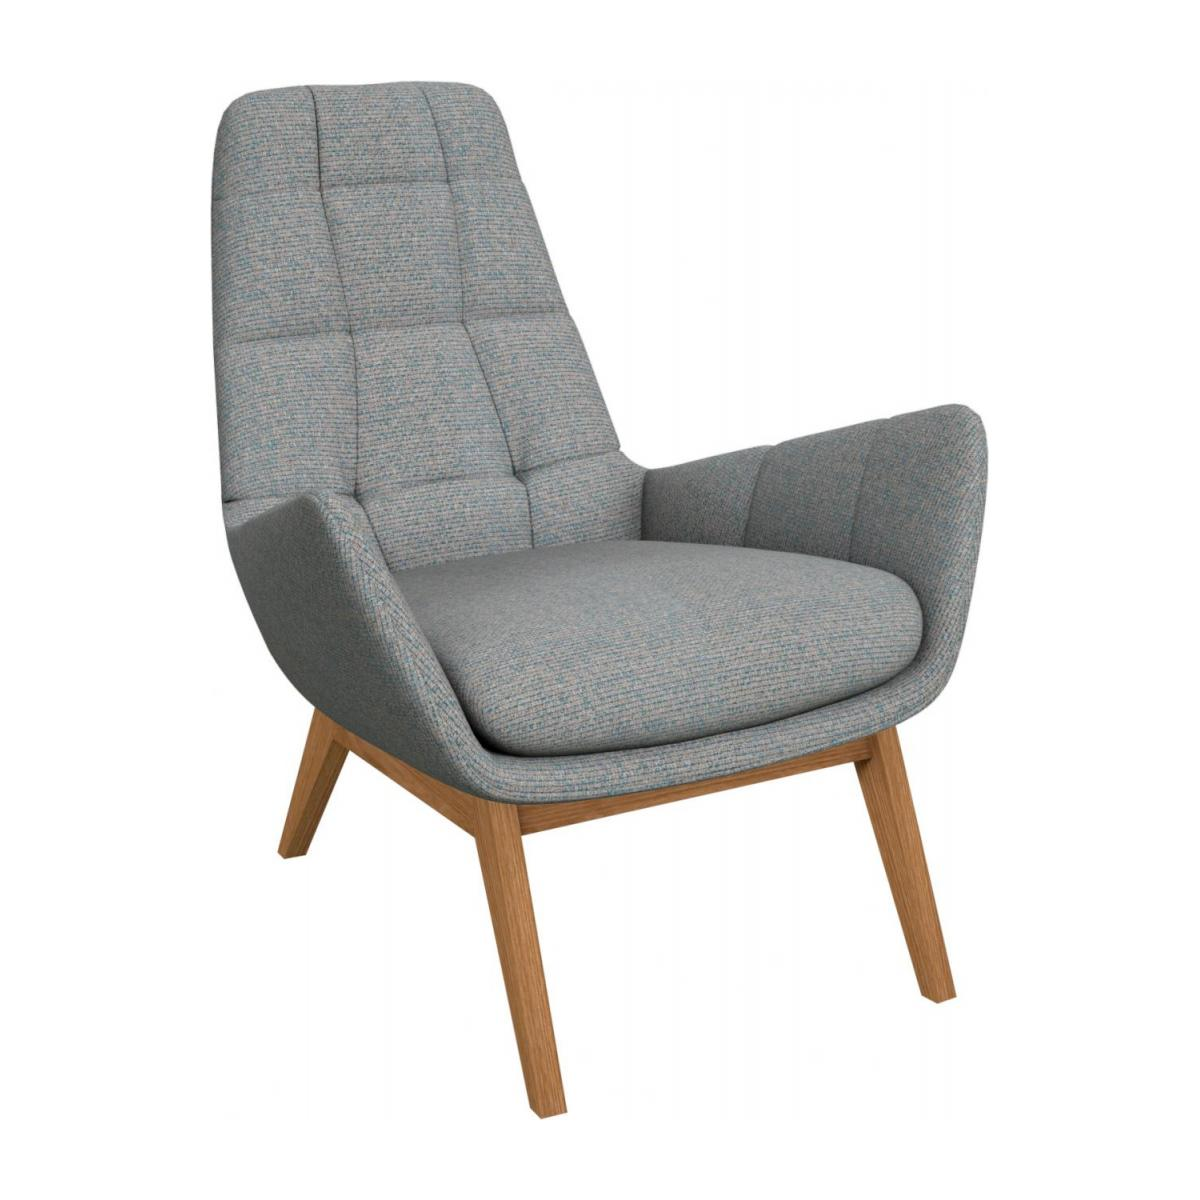 Armchair in Lecce fabric, blue reef with oak legs